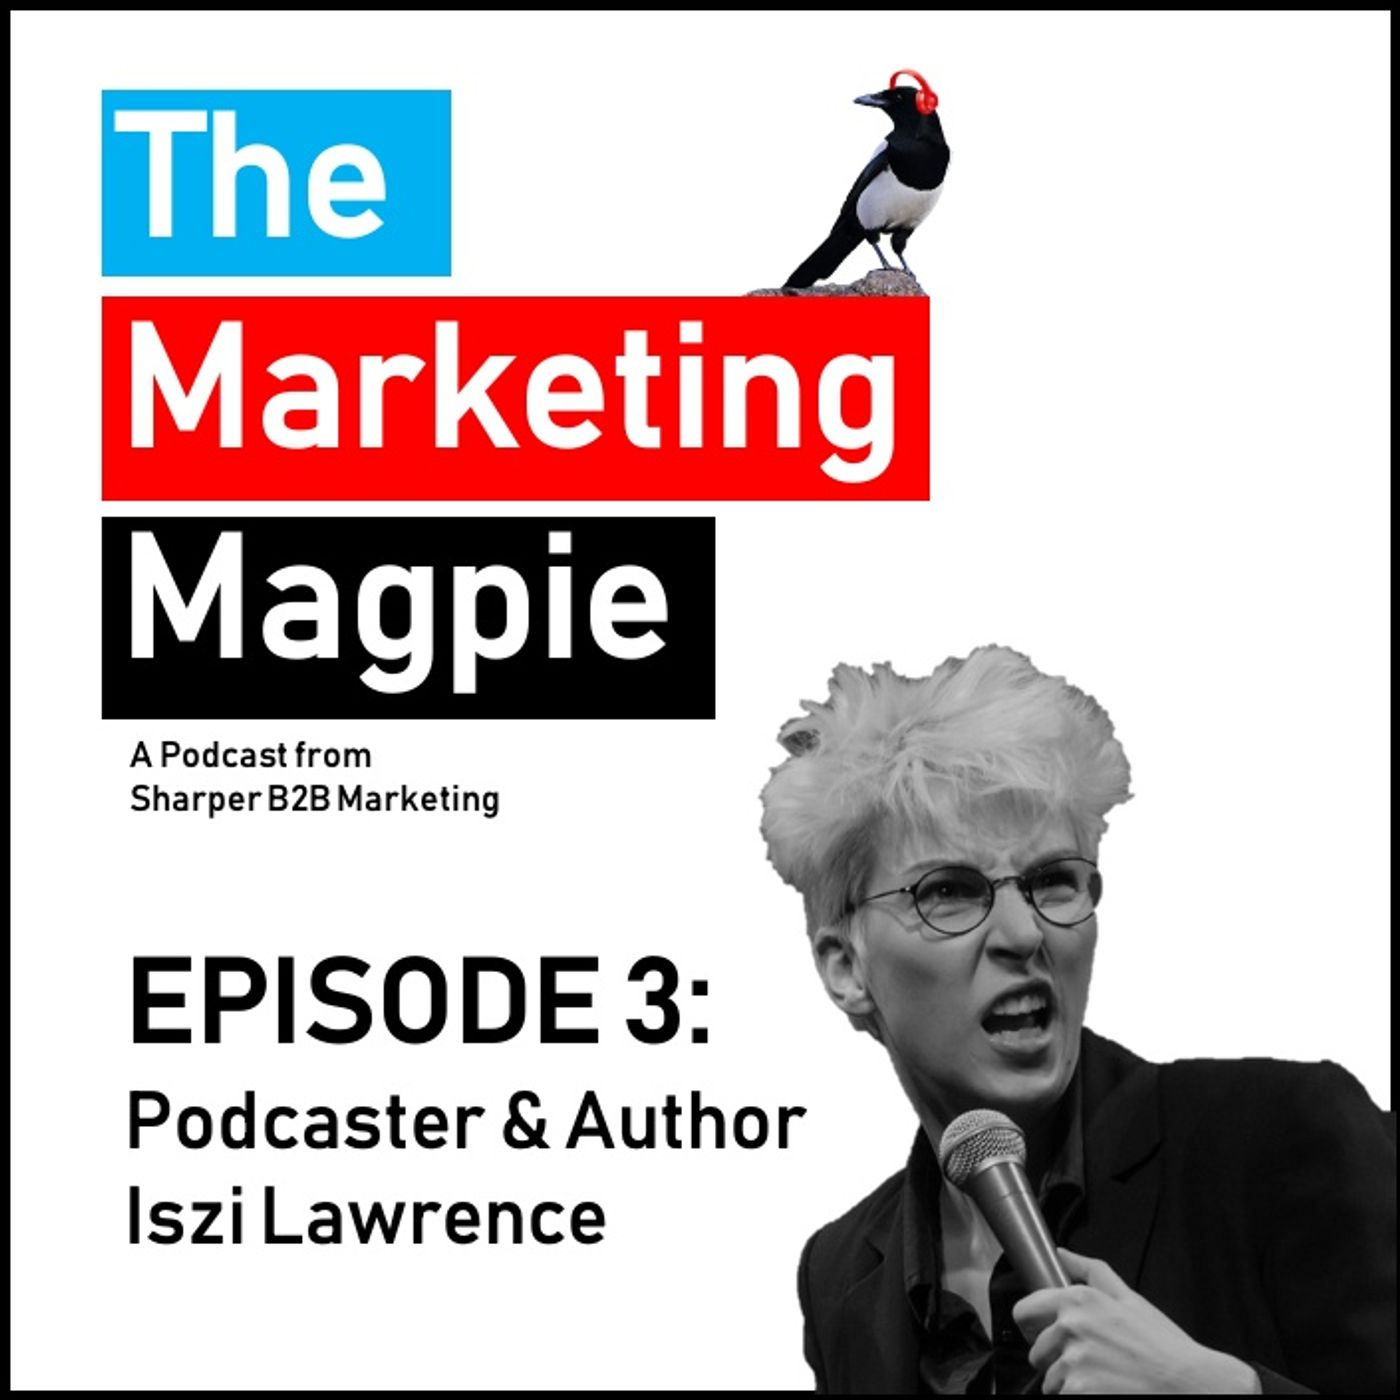 The Marketing Magpie - Episode 3 - Podcaster and Author Iszi Lawrence